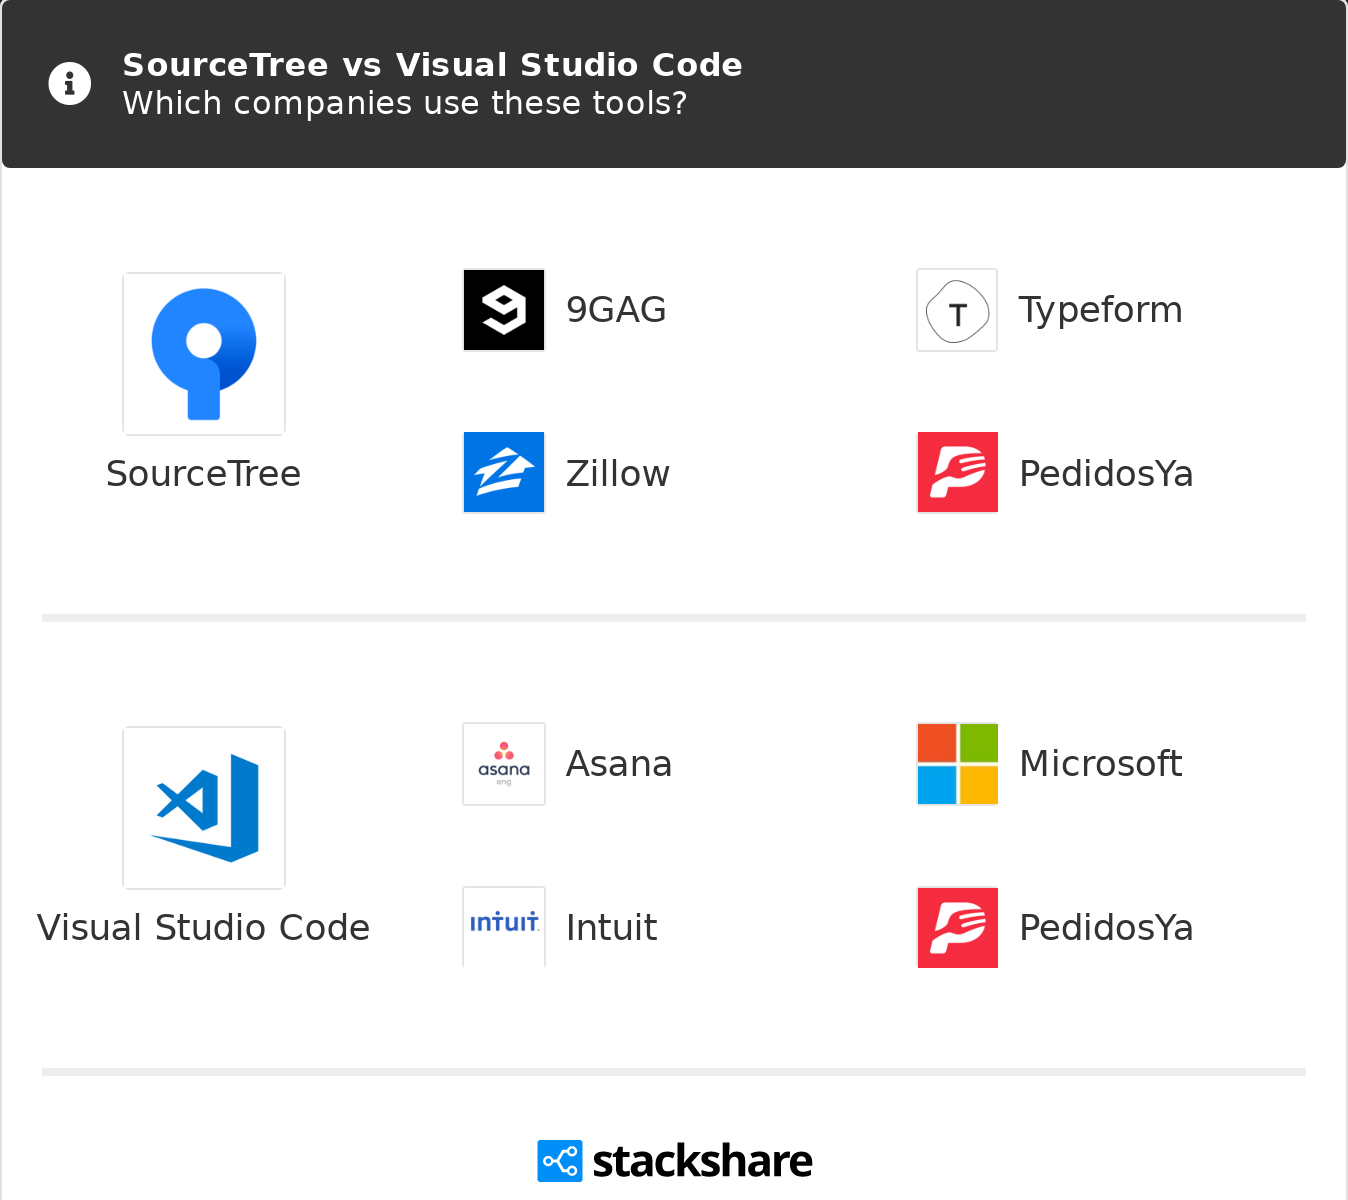 SourceTree vs Visual Studio Code | What are the differences?